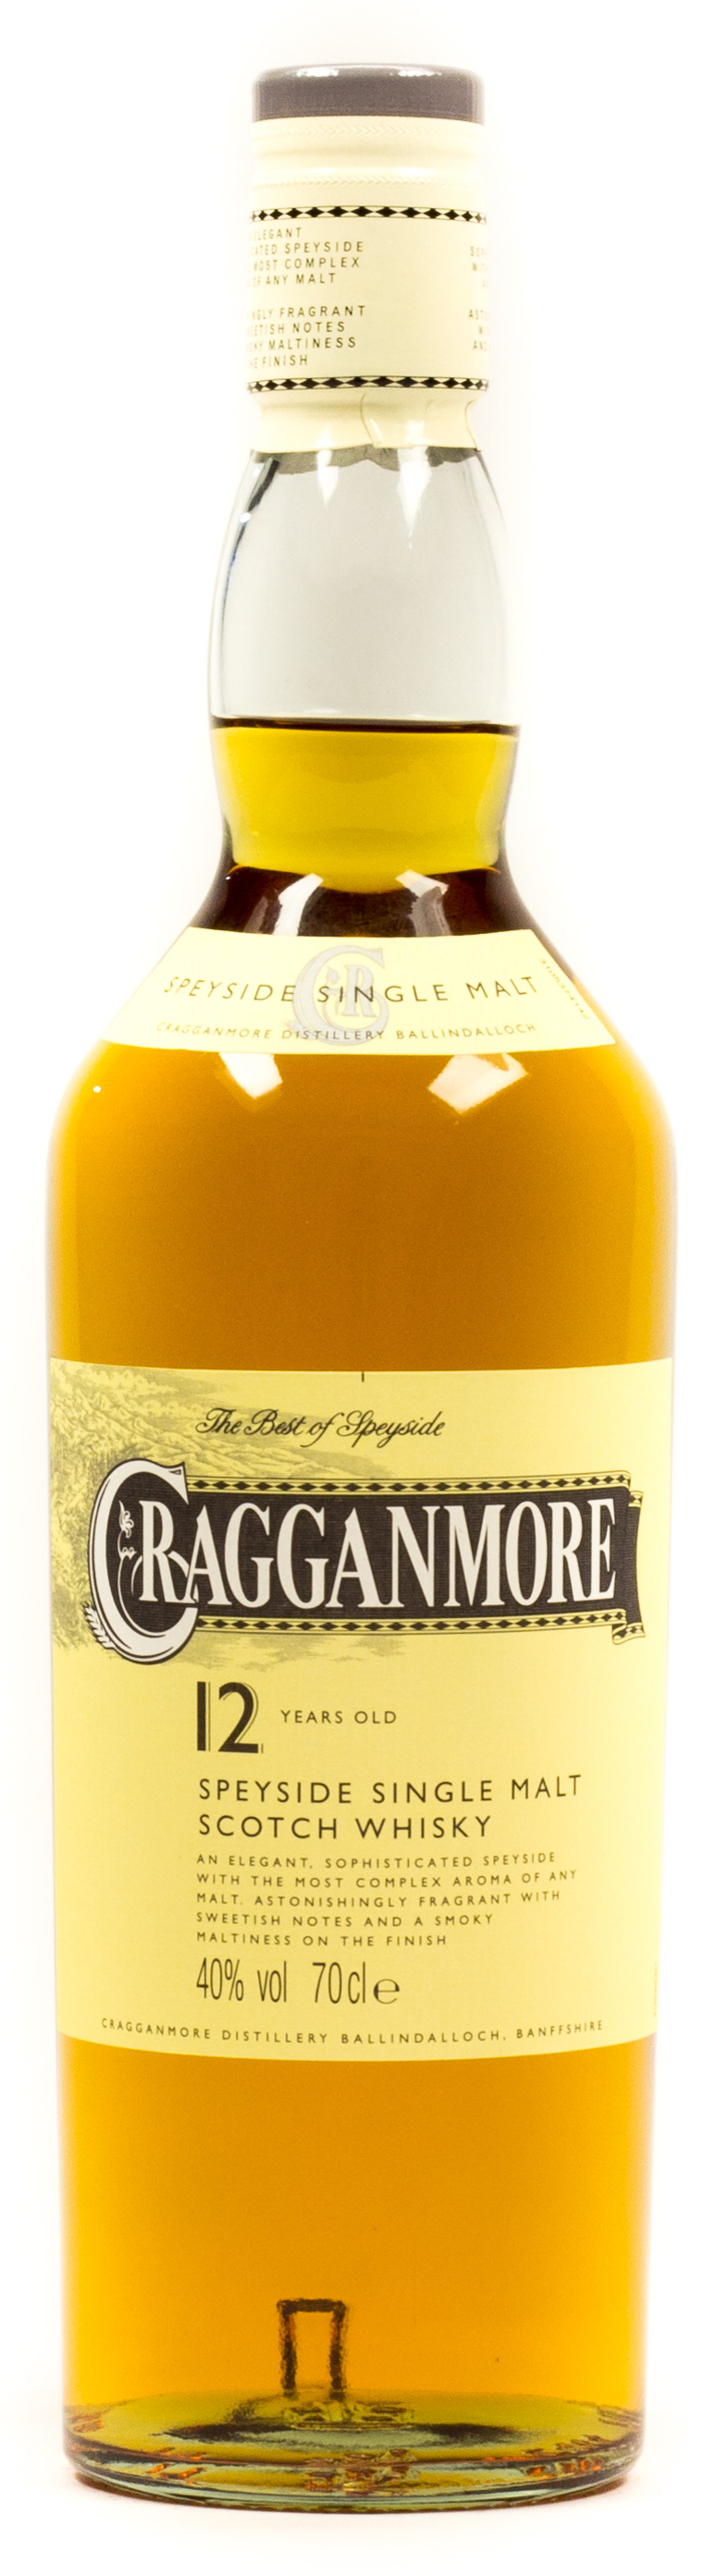 Cragganmore Speyside Single Malt Scotch Whisky 12 years 0,7 l